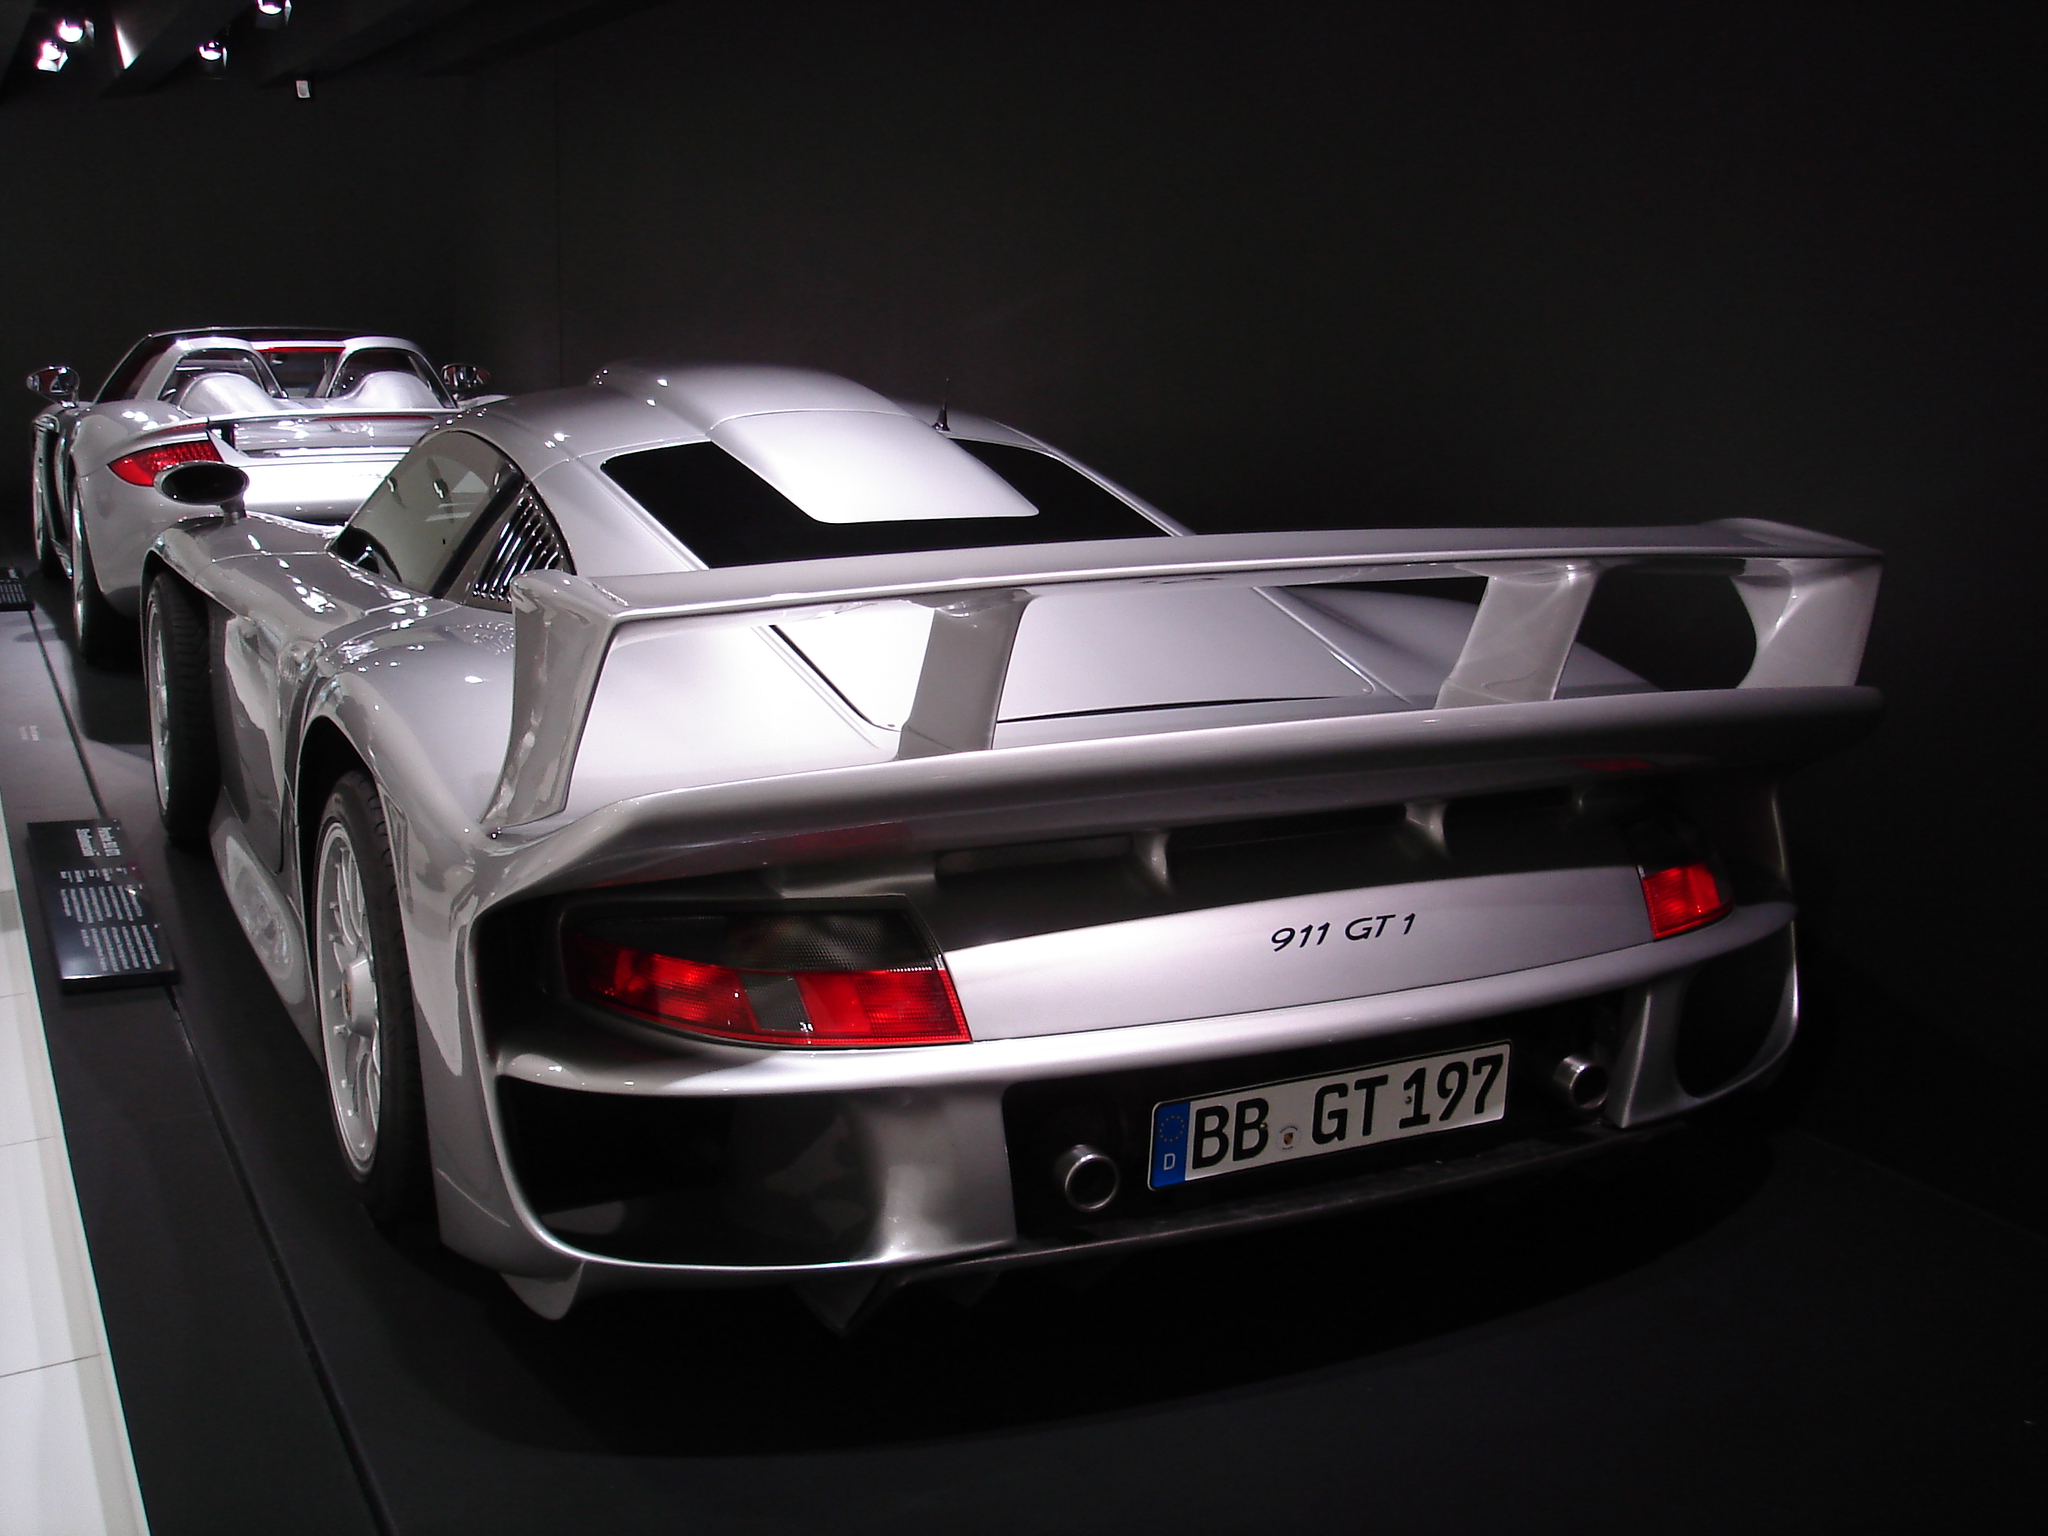 porsche carrera gt 911 gt1 street version flickr photo sharing. Black Bedroom Furniture Sets. Home Design Ideas